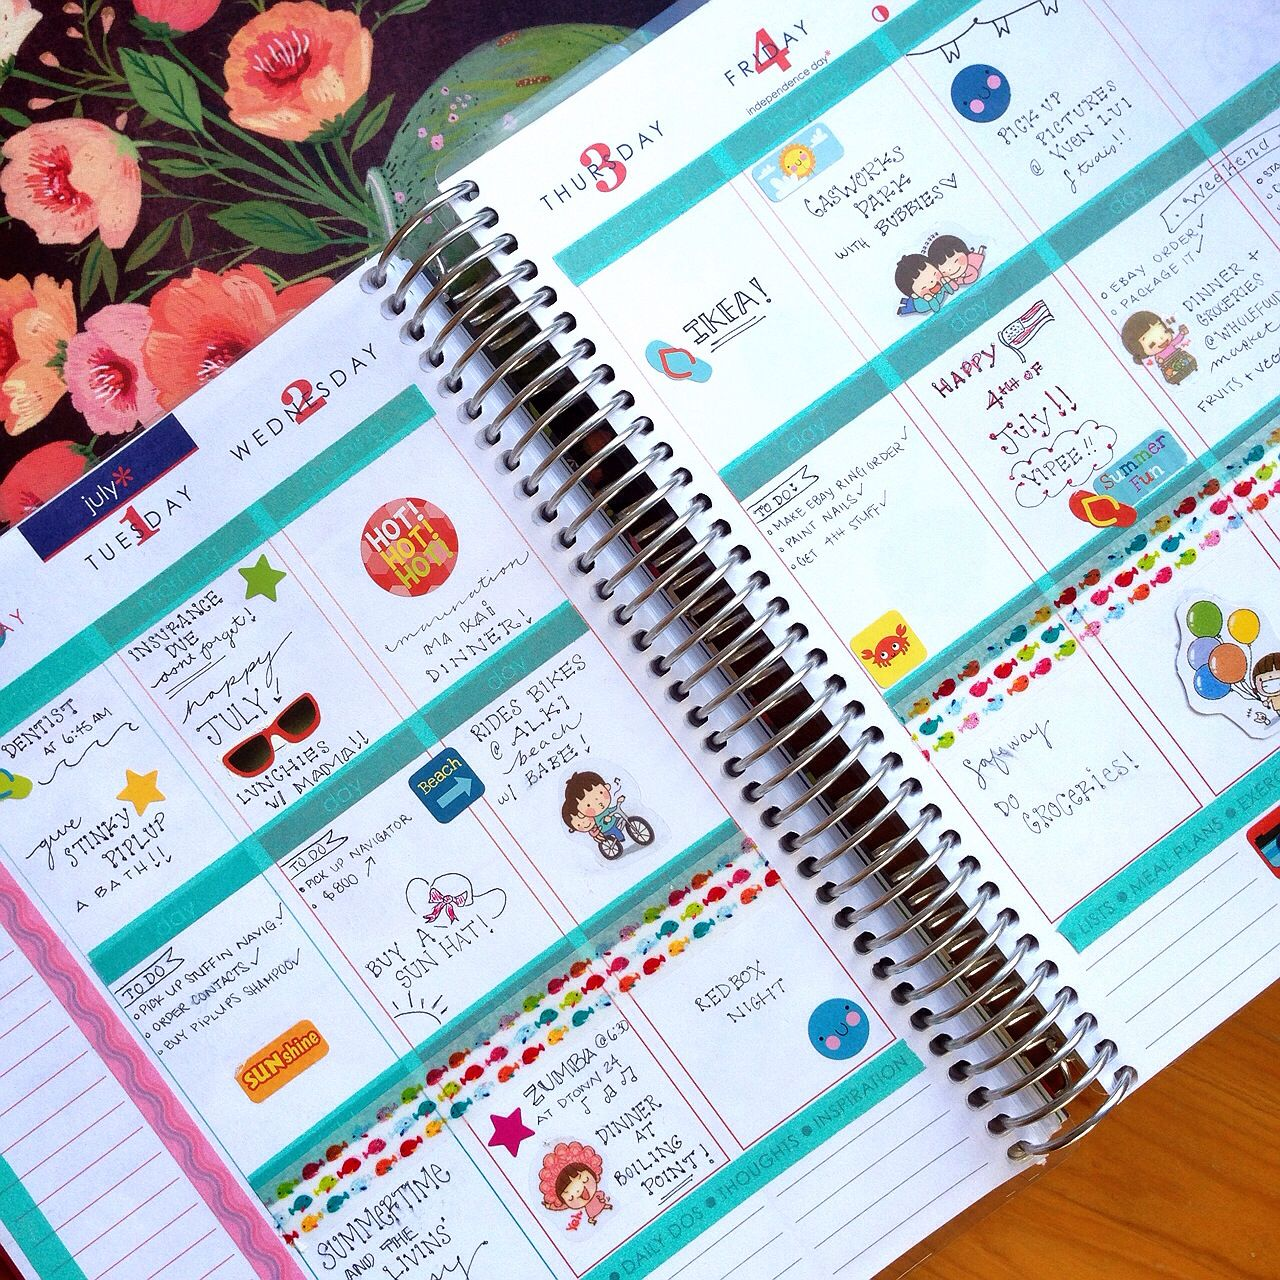 A great #erincondren book. I love her printing! I wish I keep my #planner this tidy :-)